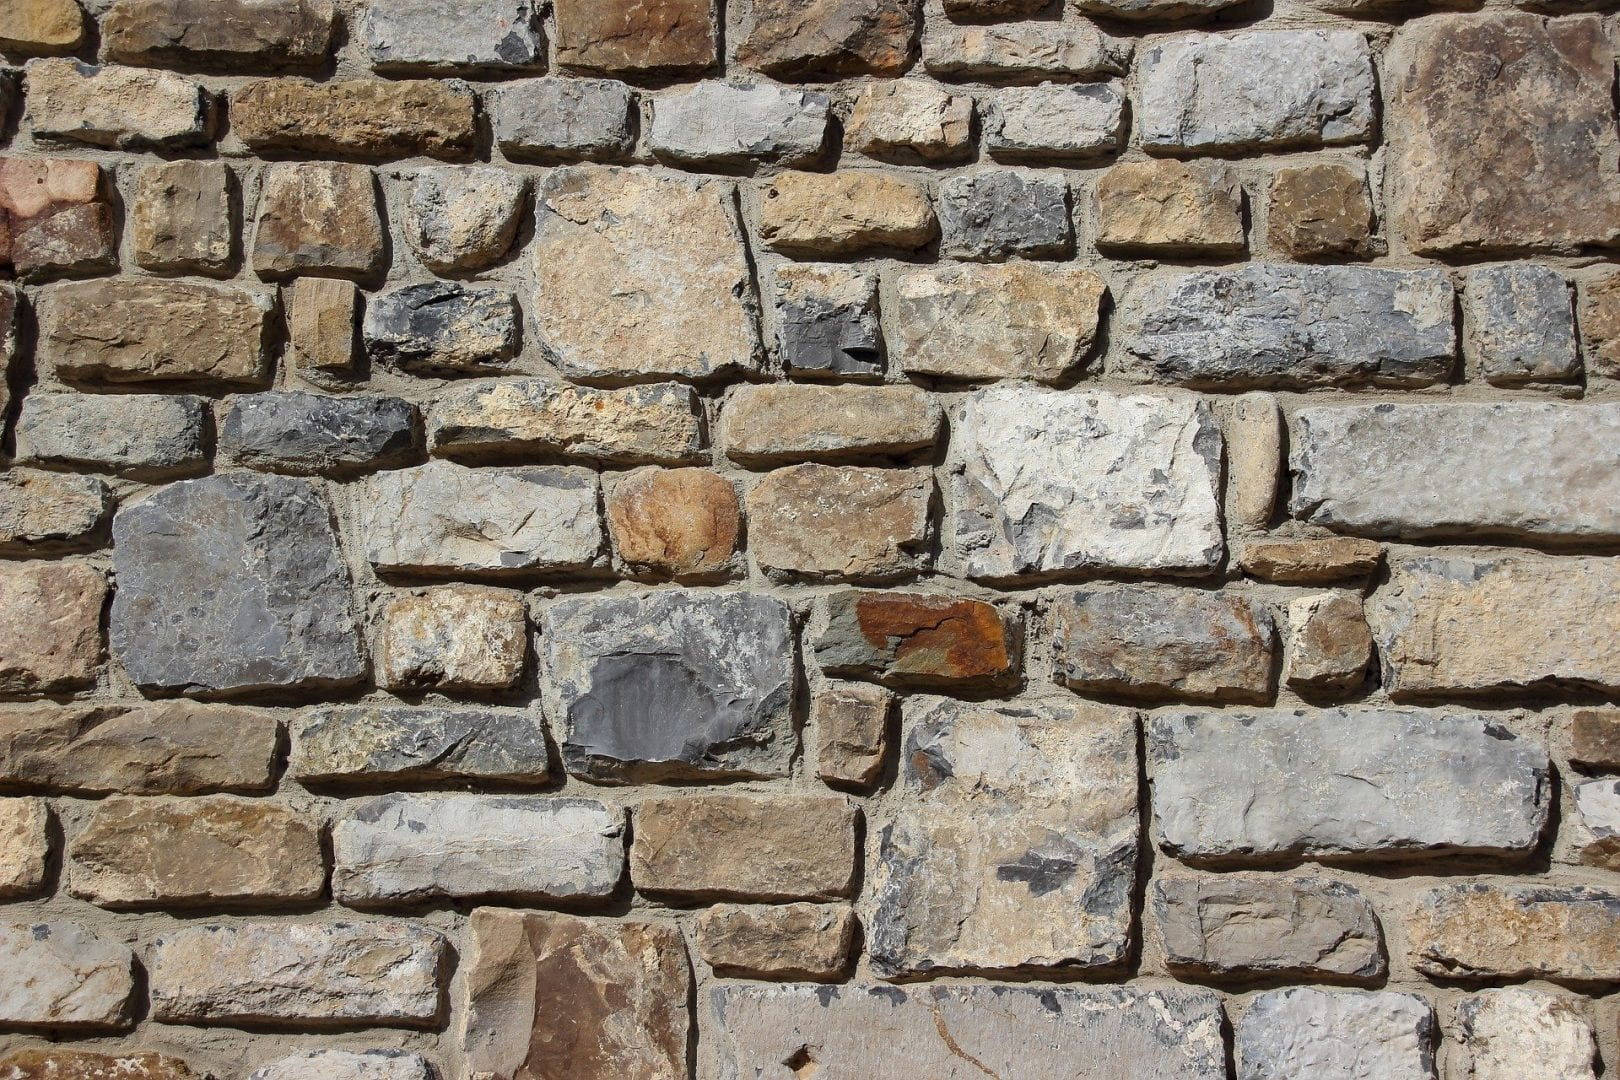 types of stone used in outdoor masonry projects